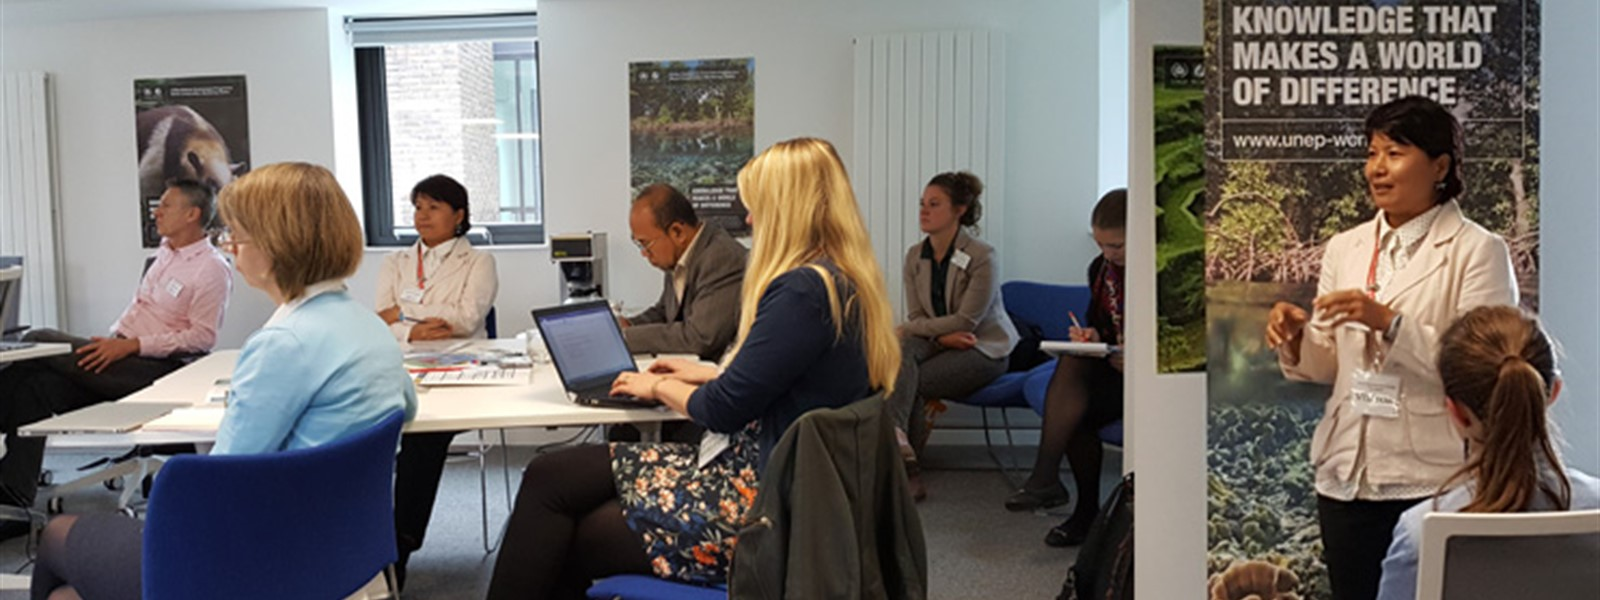 Picture of workshops taking place during the Global Coral Reef Partnership Workshops in Cambridge.